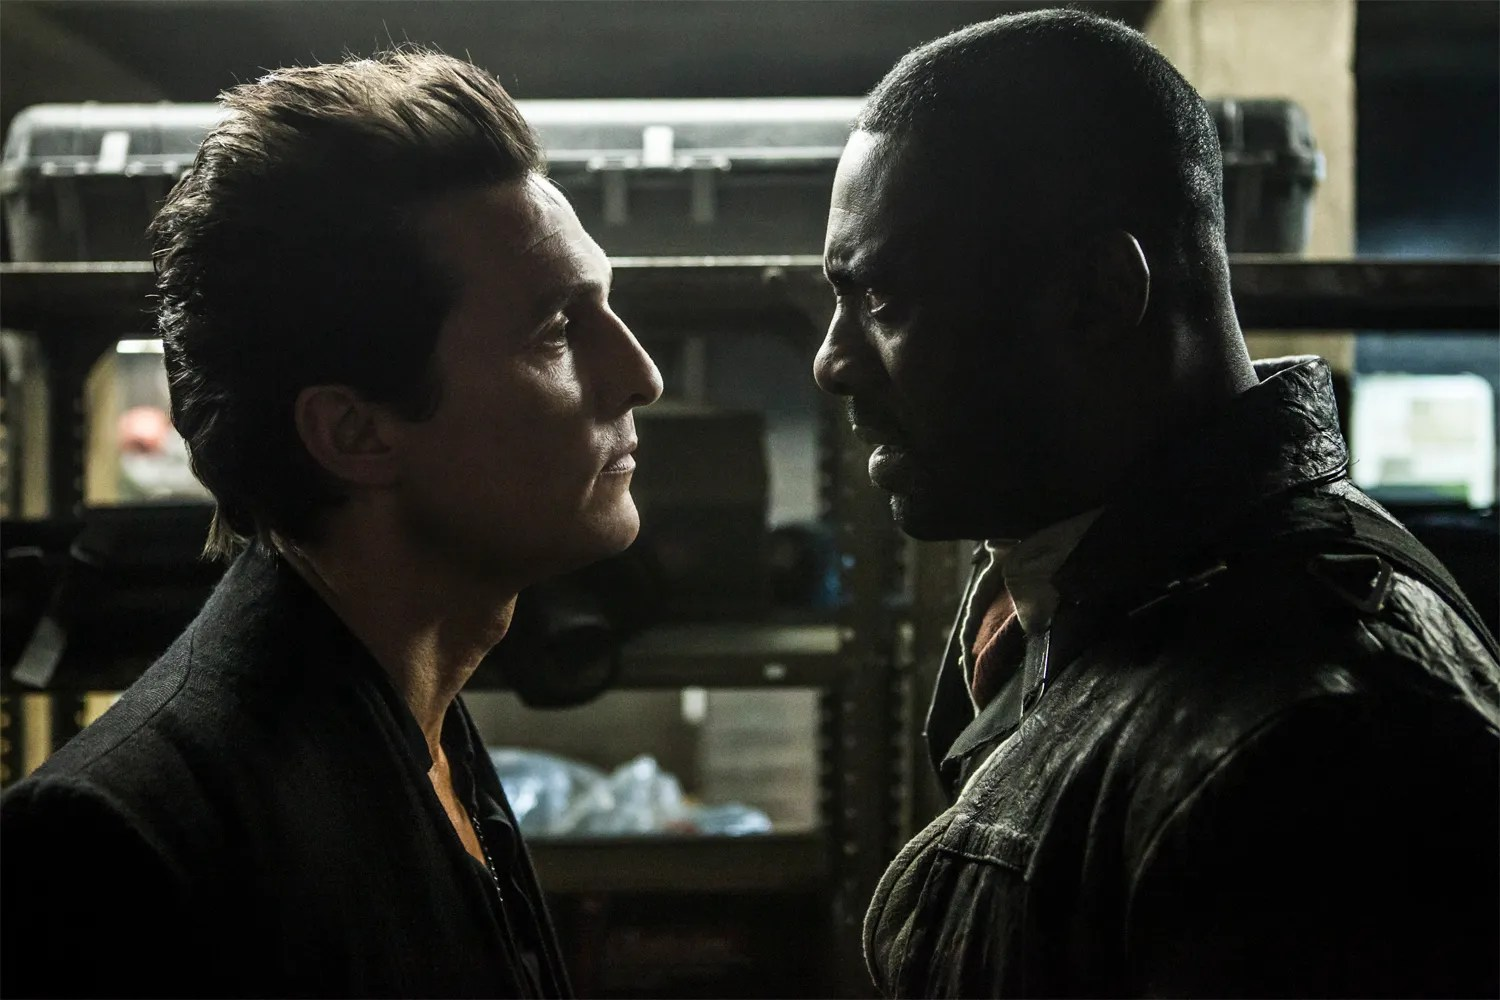 https://i0.wp.com/cdn.collider.com/wp-content/uploads/2017/01/the-dark-tower-matthew-mcconaughey-idris-elba.jpg